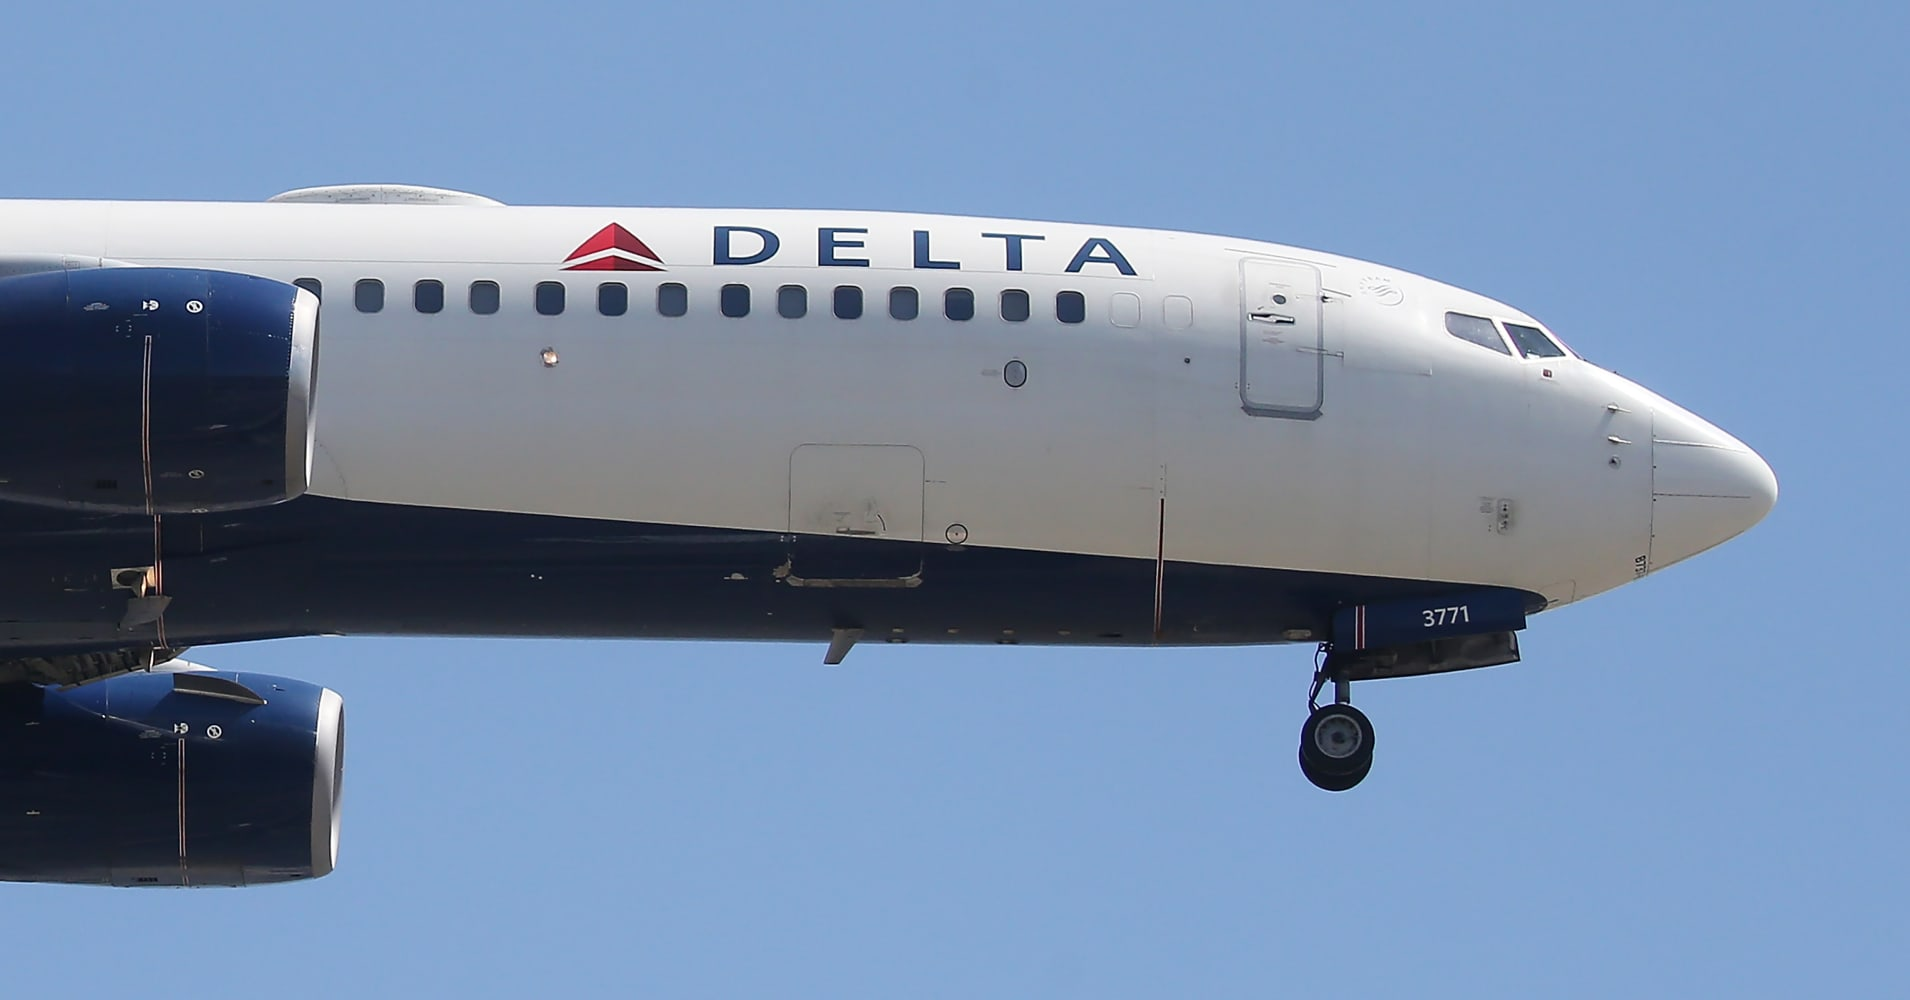 Delta's third-quarter earnings top Wall Street's expectations